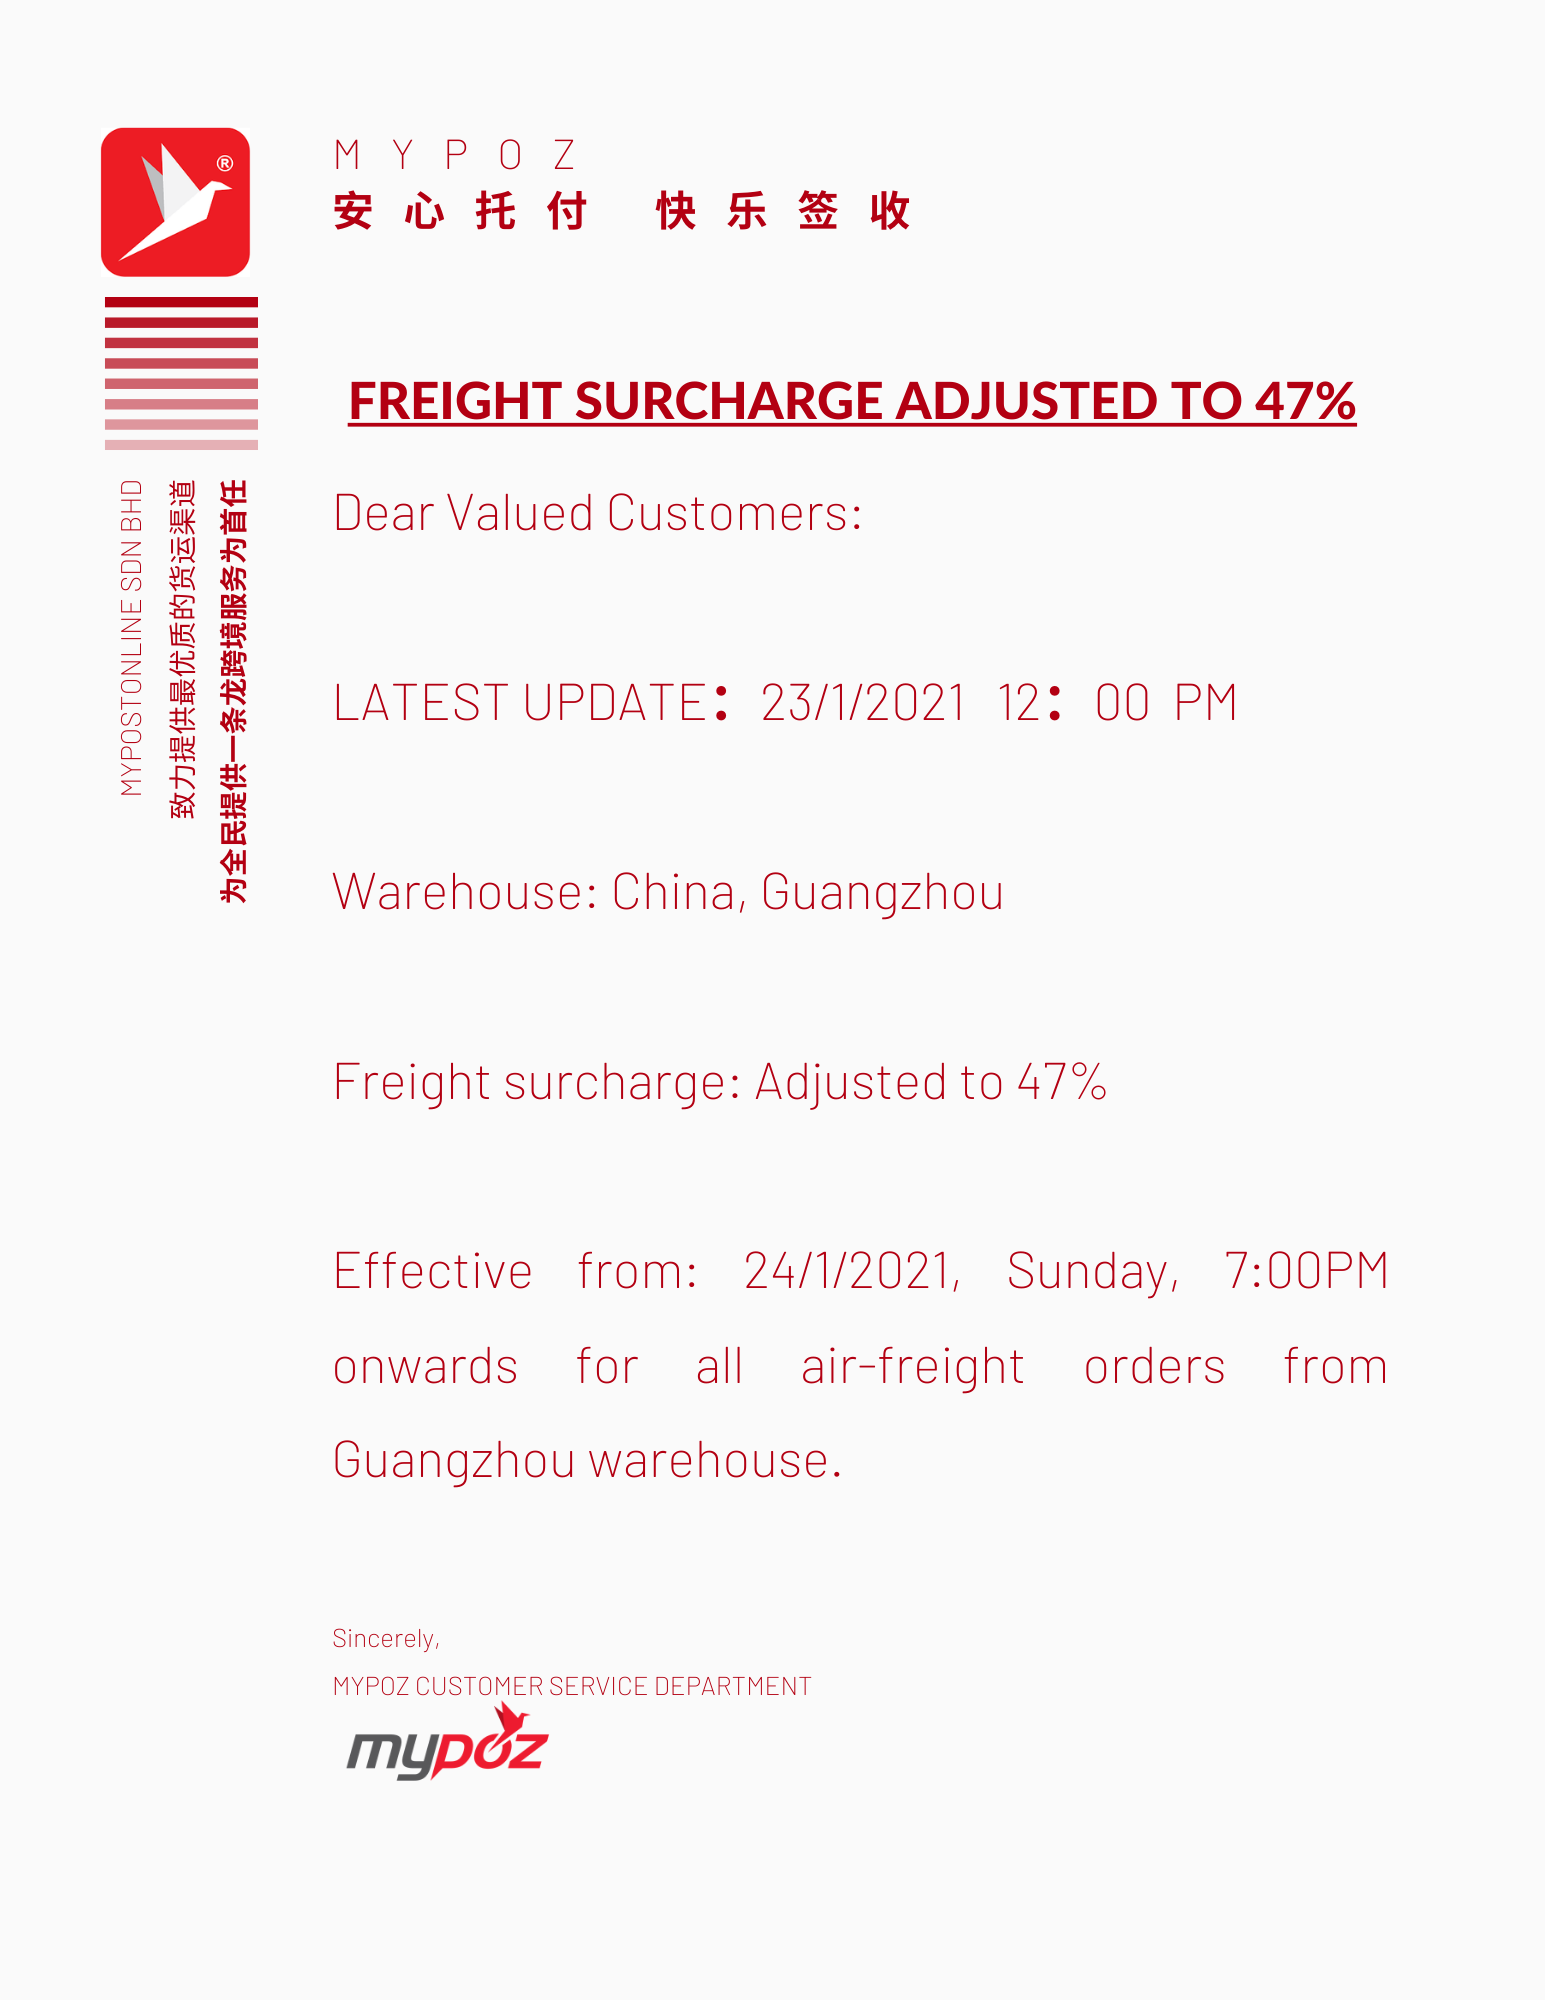 【ANNOUNCEMENT】FREIGHT SURCHARGE ADJUSTED TO 47%